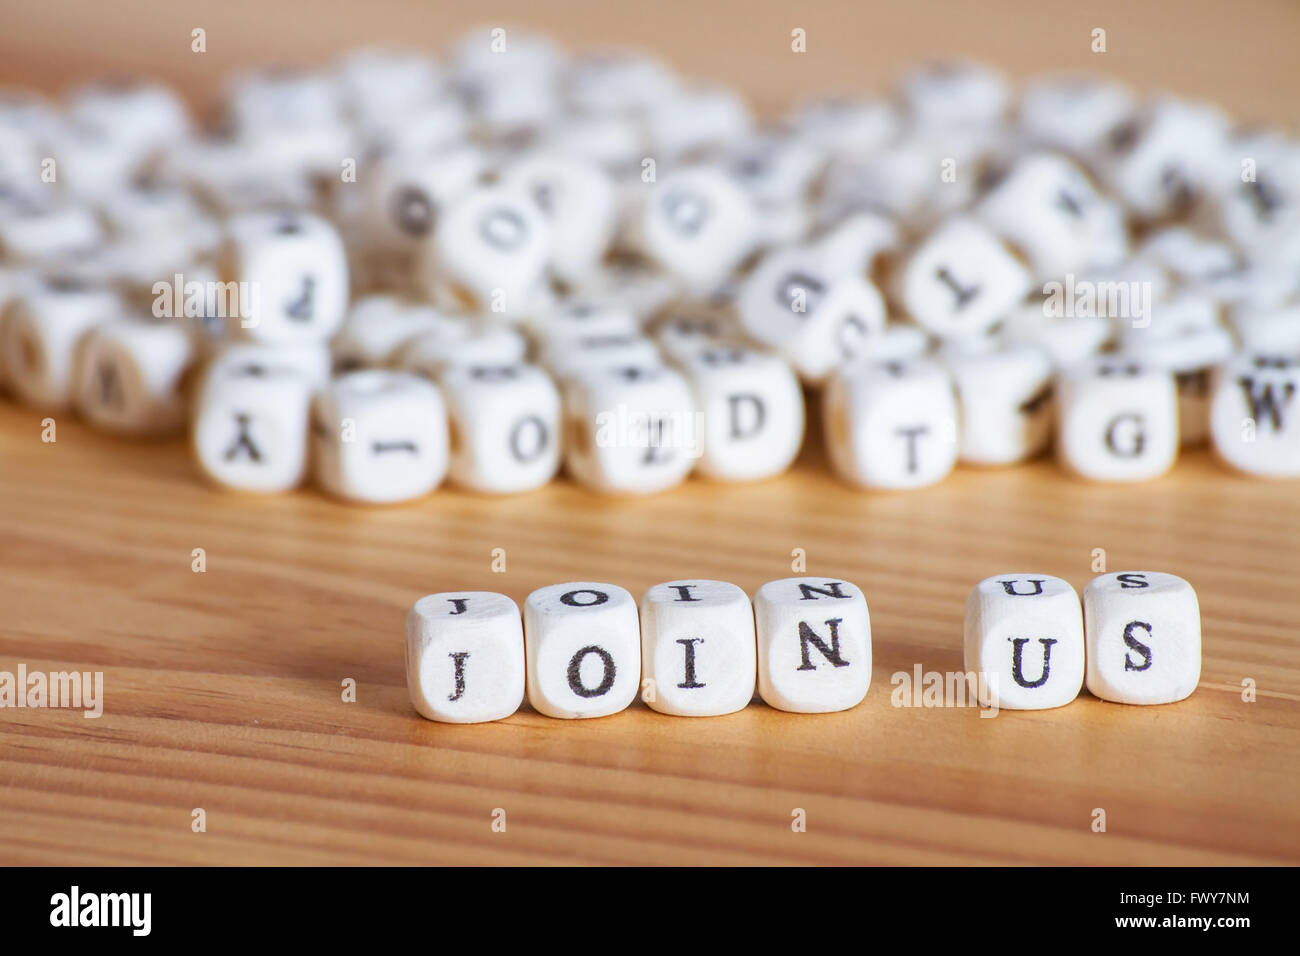 join us, concept - Stock Image